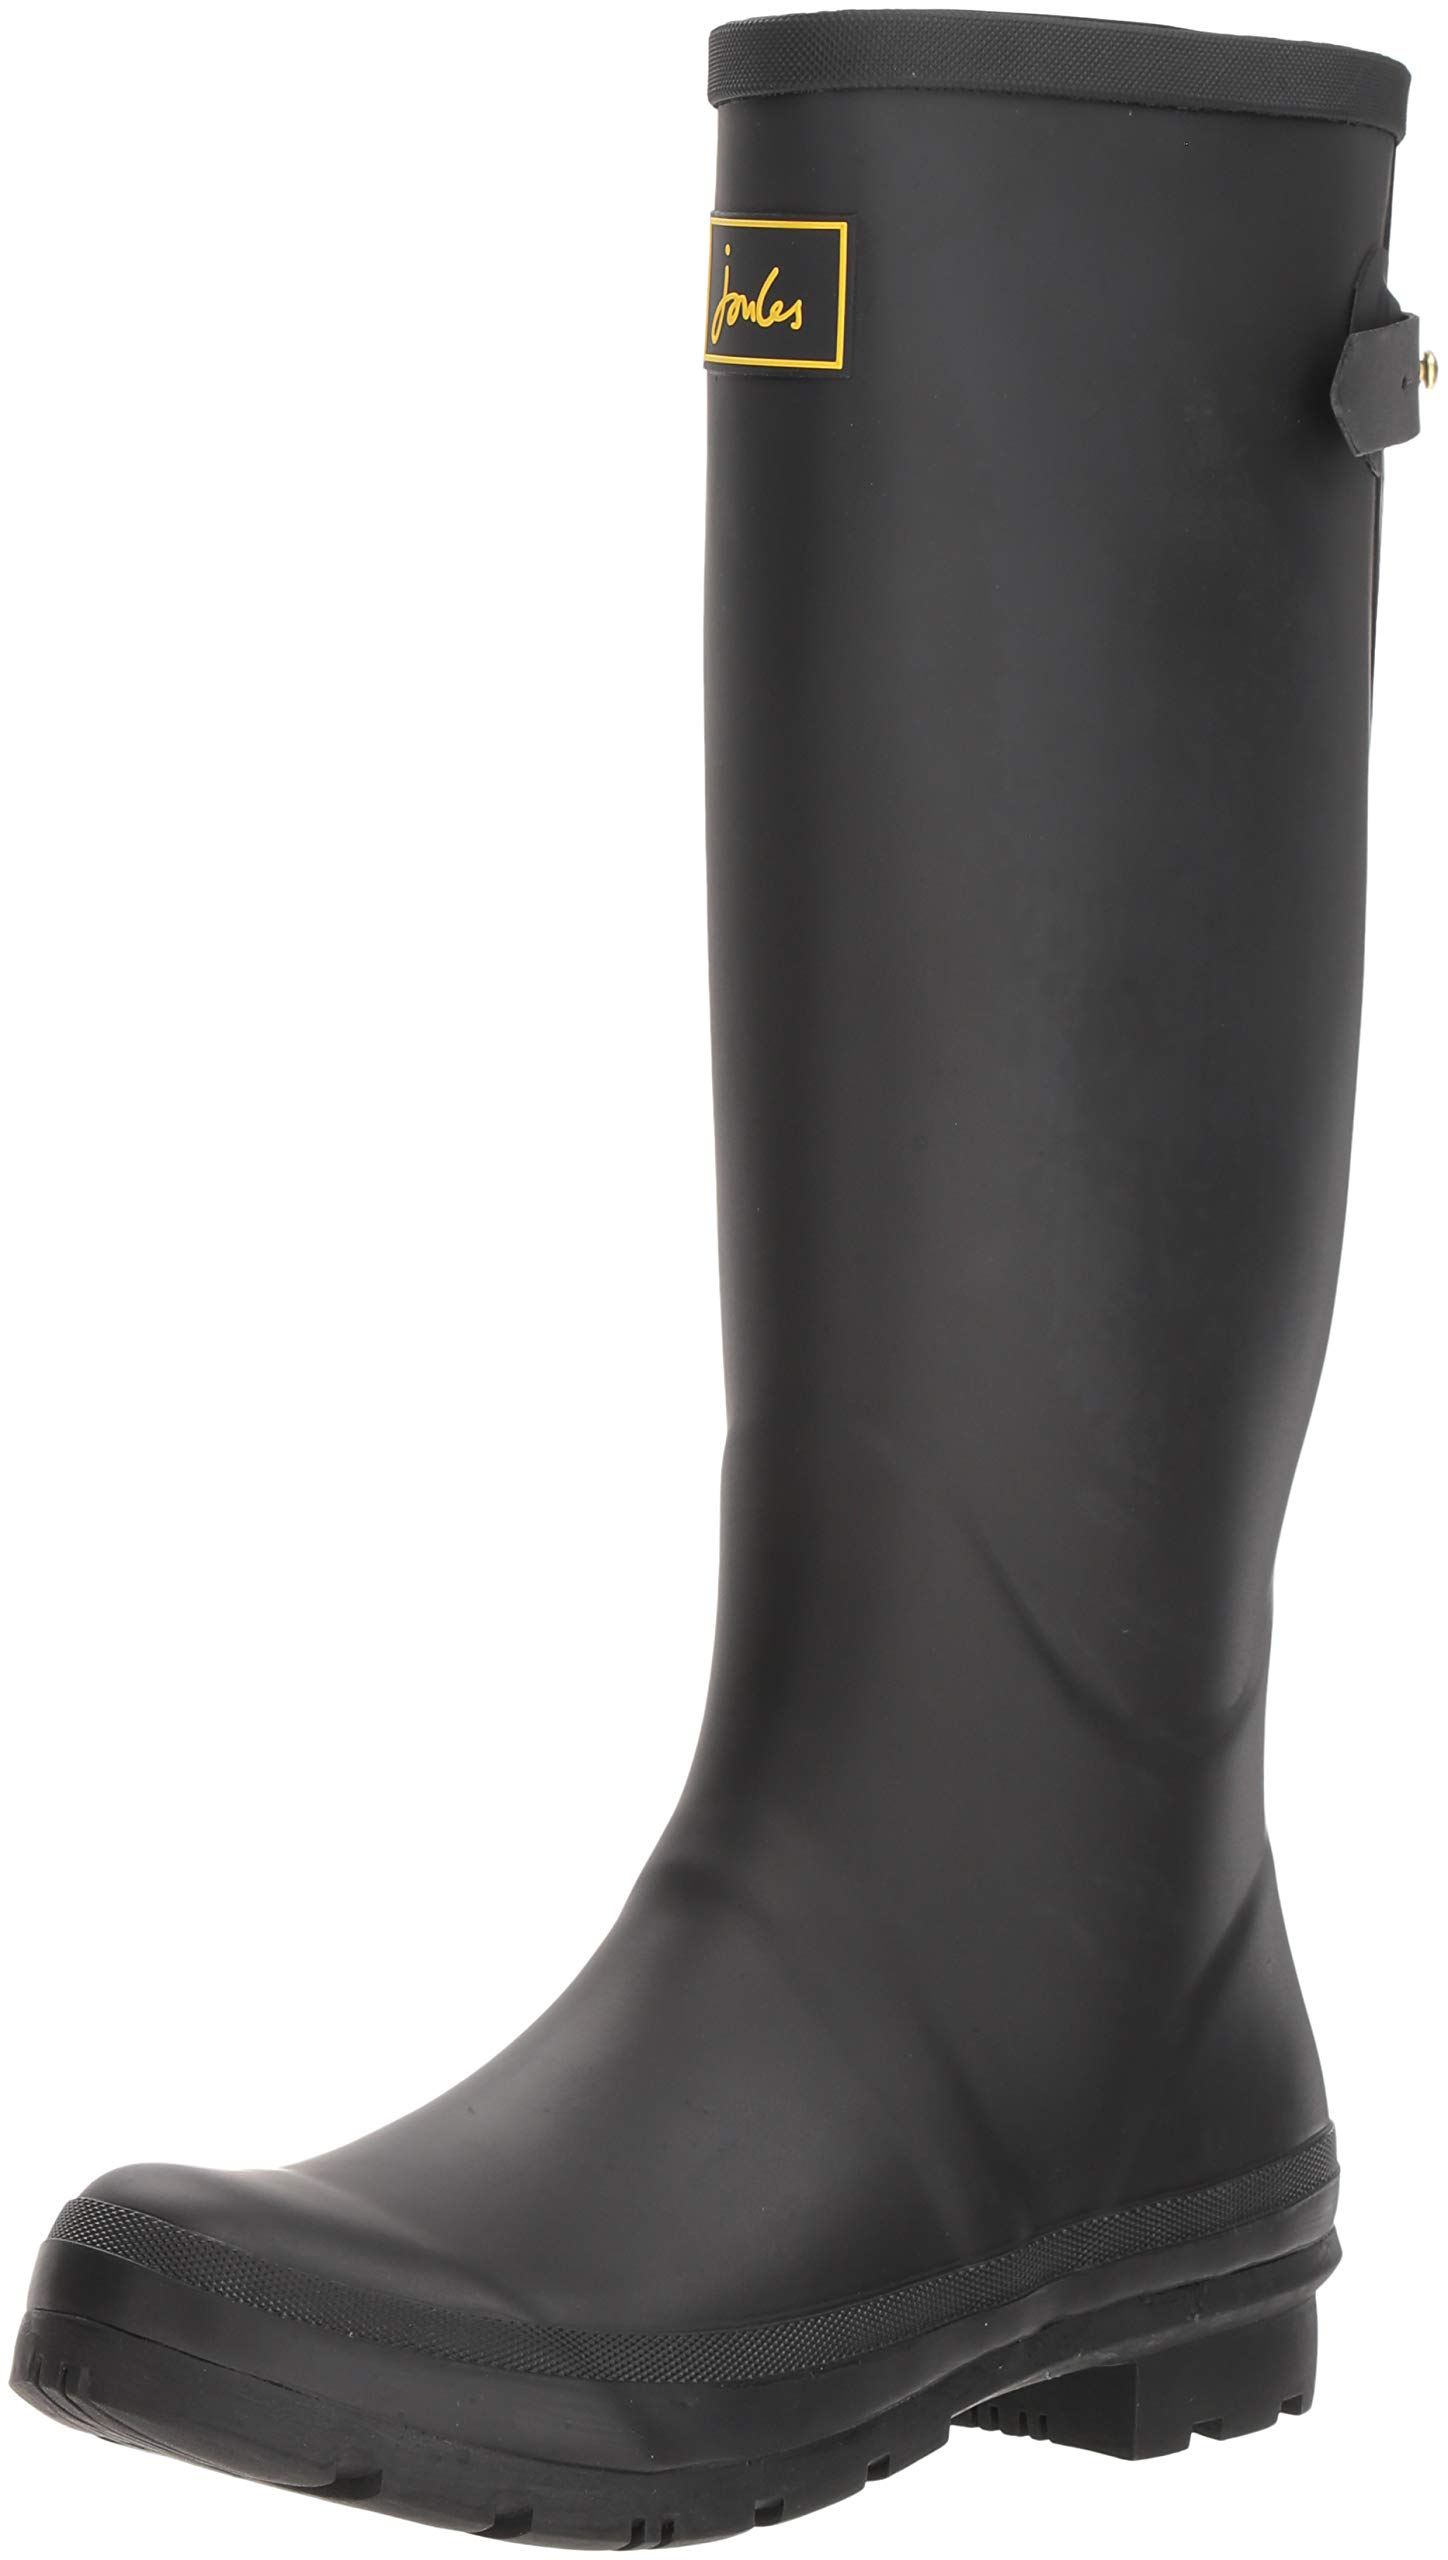 Joules Women's Field Welly Rain Boot, Black, 5 Medium UK (7 US) by Joules